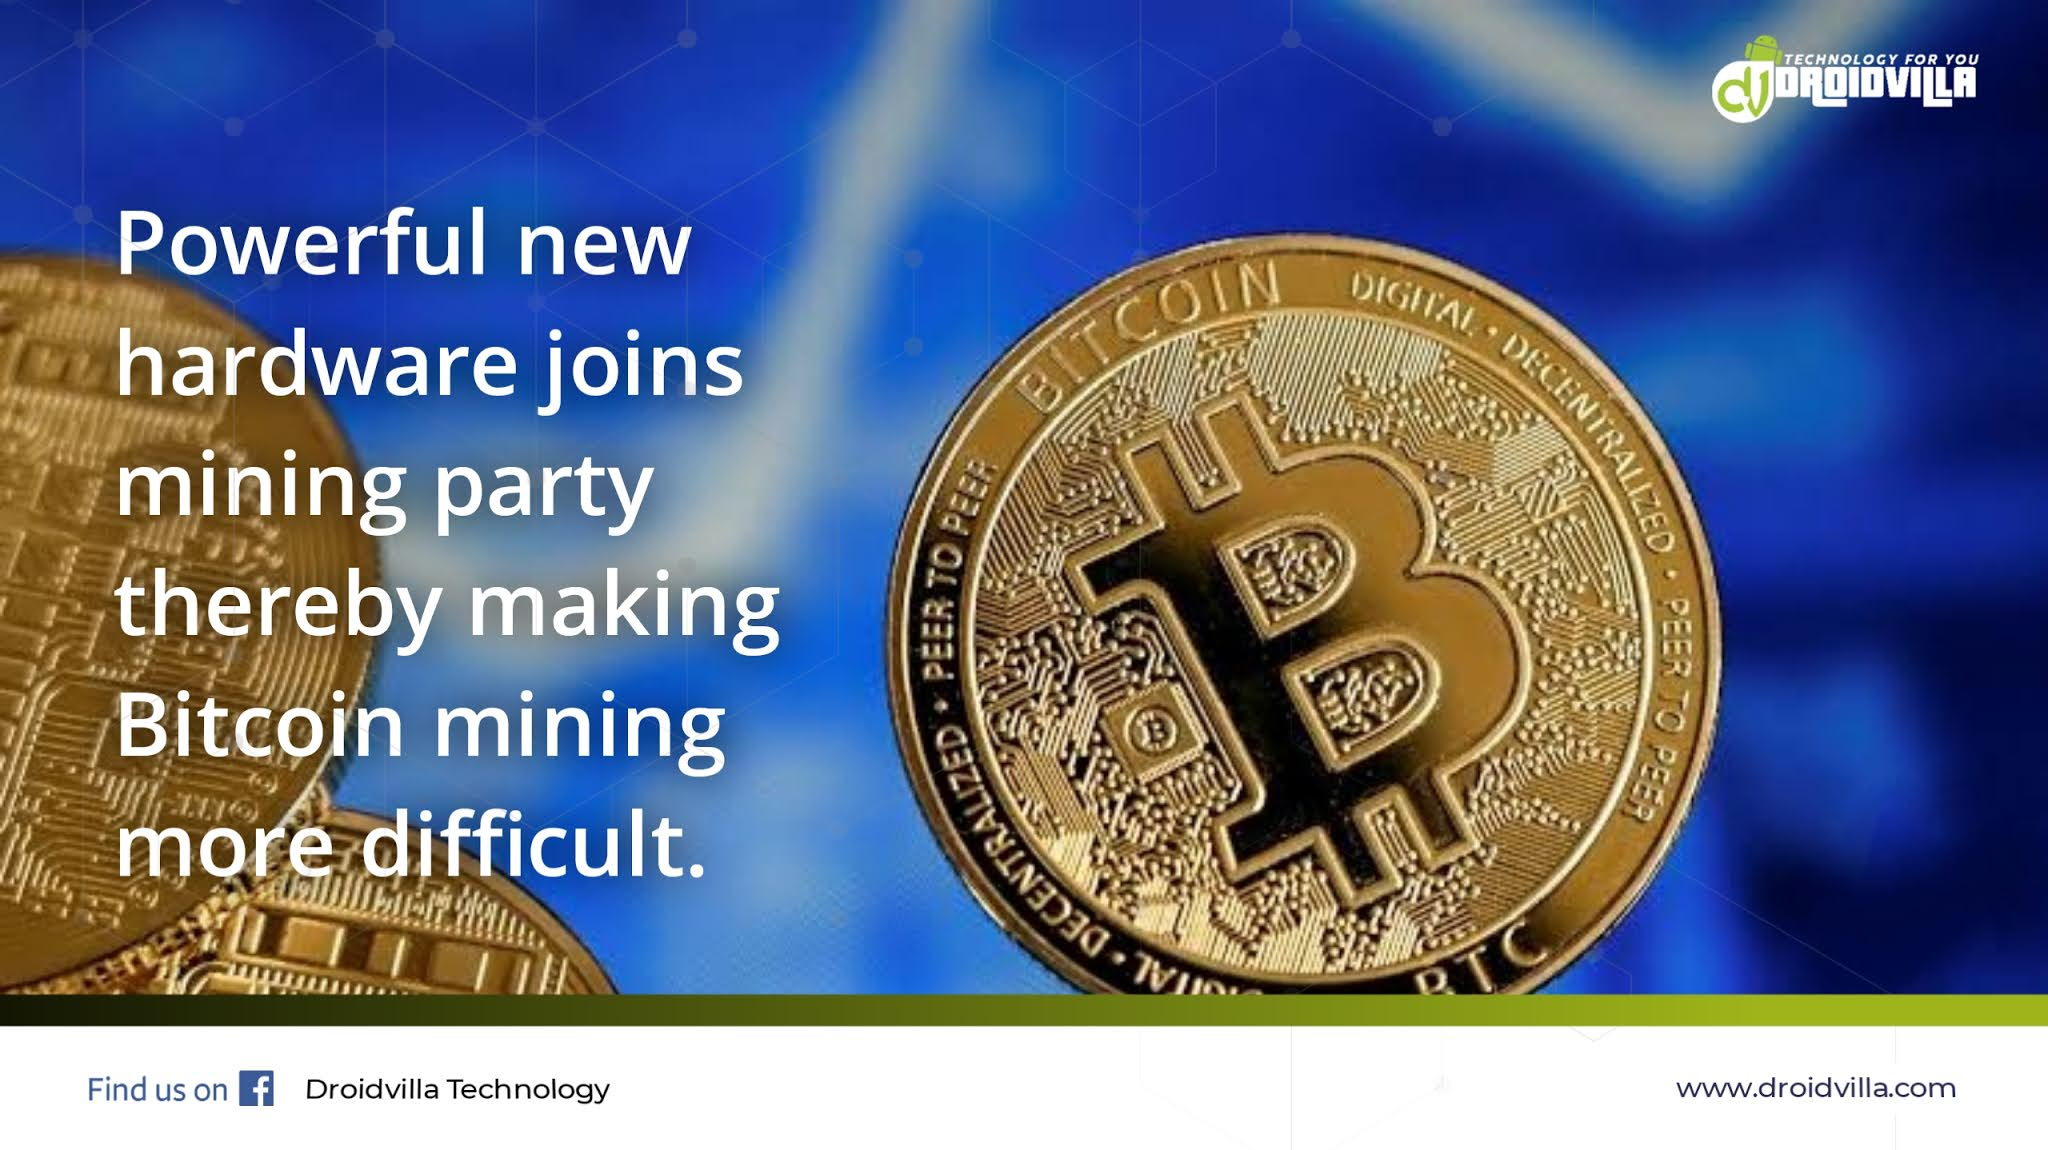 powerful-new-hardware-joins-mining-party-thereby-making-bitcoin-mining-more-difficult-droidvilla-tech-1-android-tech-blog